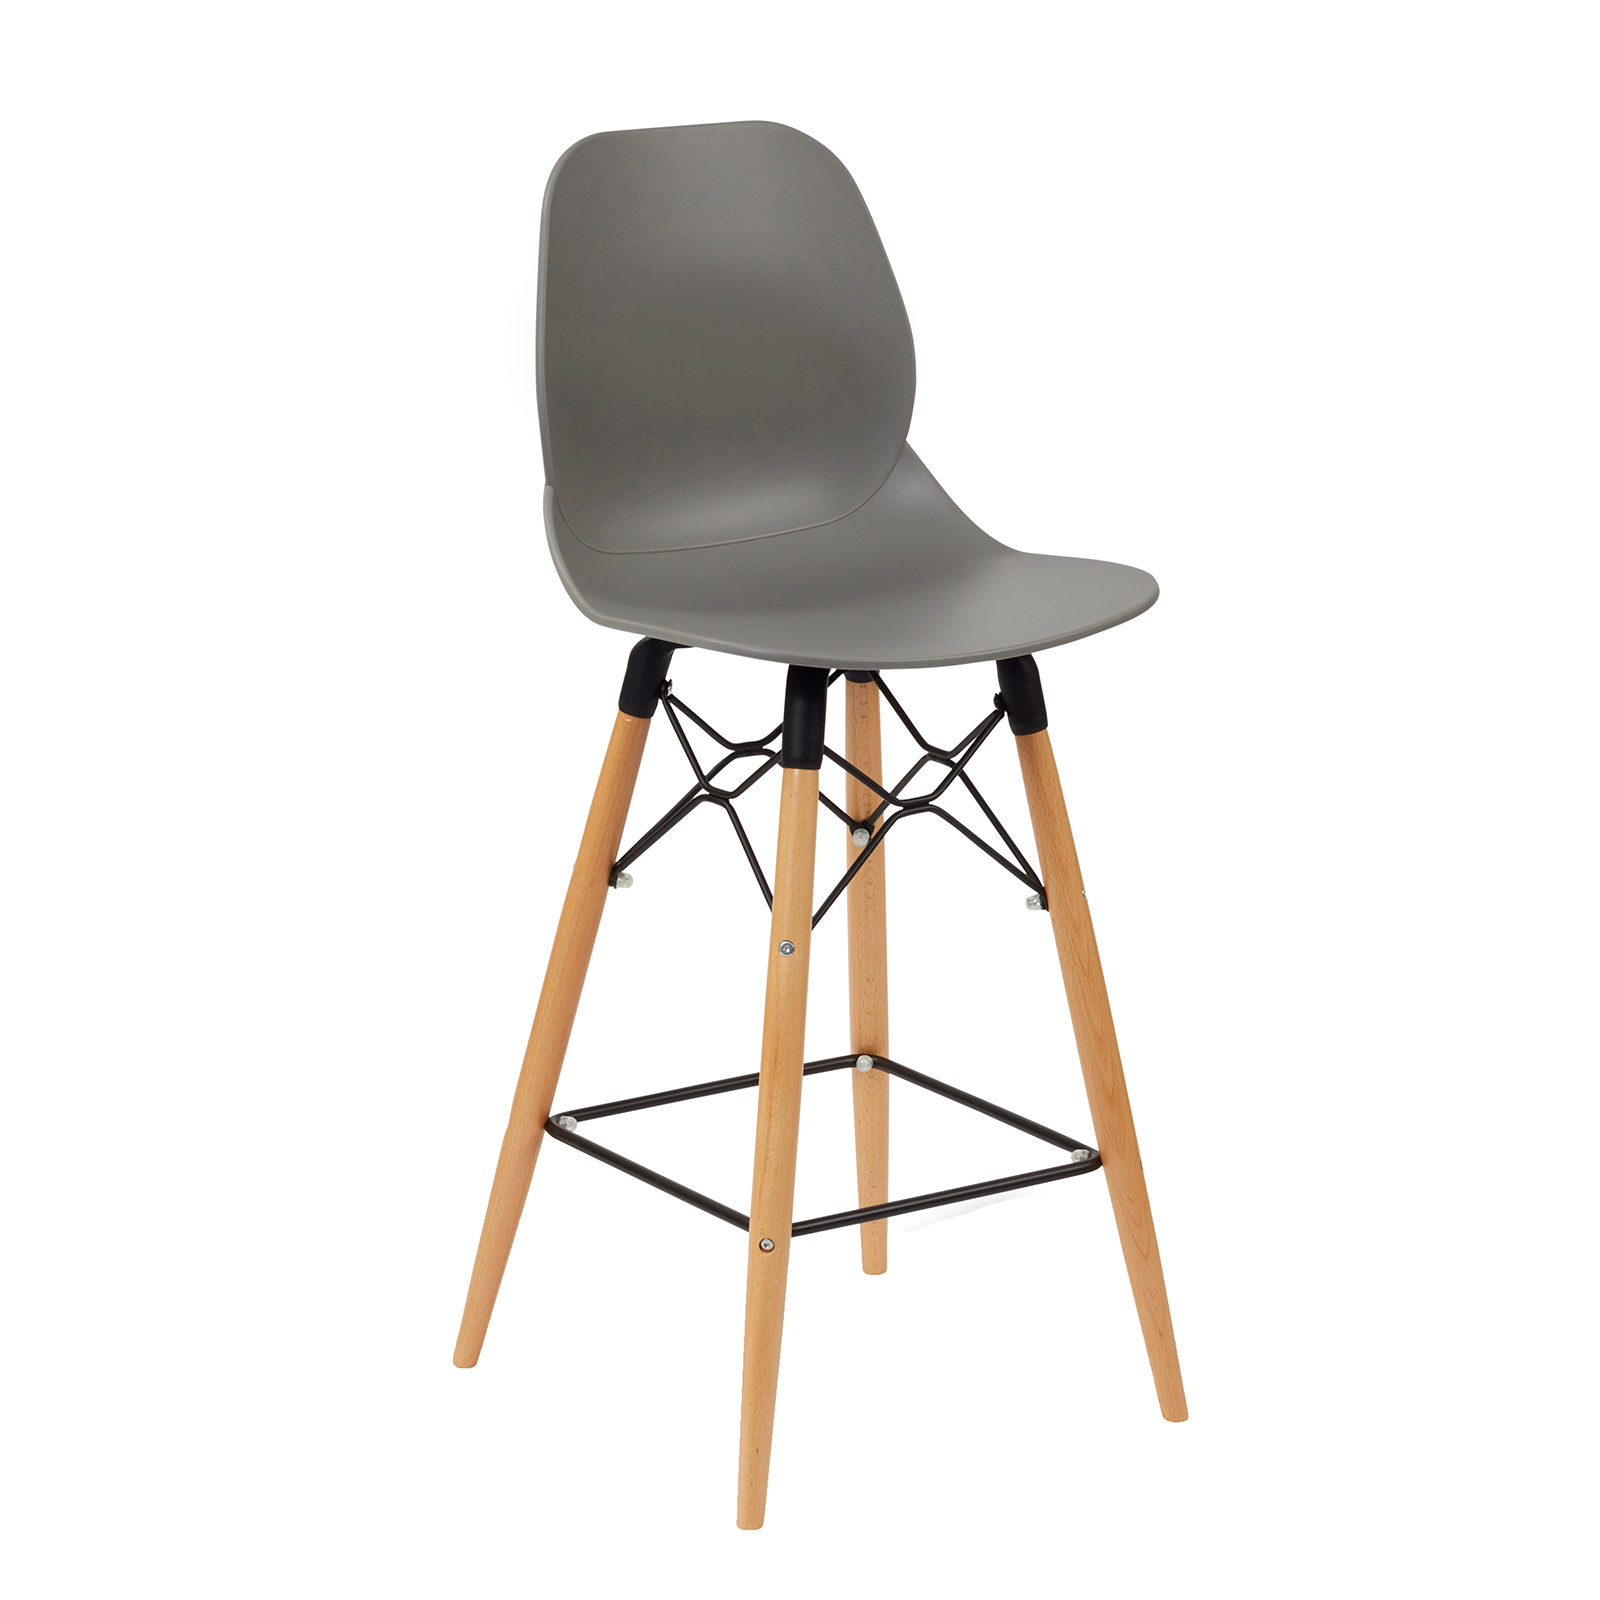 Strut multi-purpose stool with wooden frame